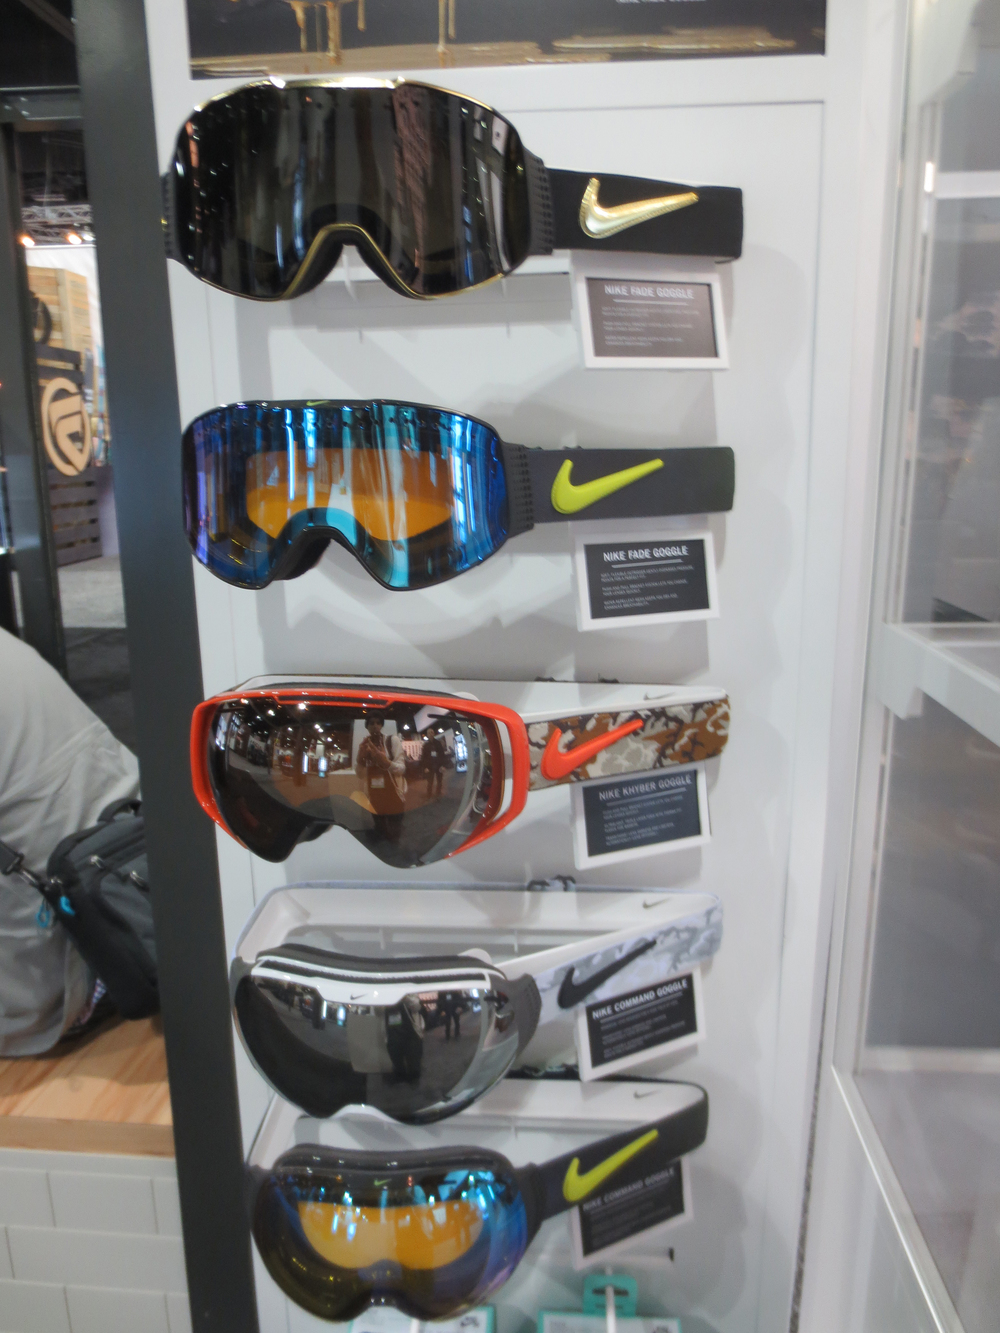 No more Nike Boots, but seems goggles remain in their future.